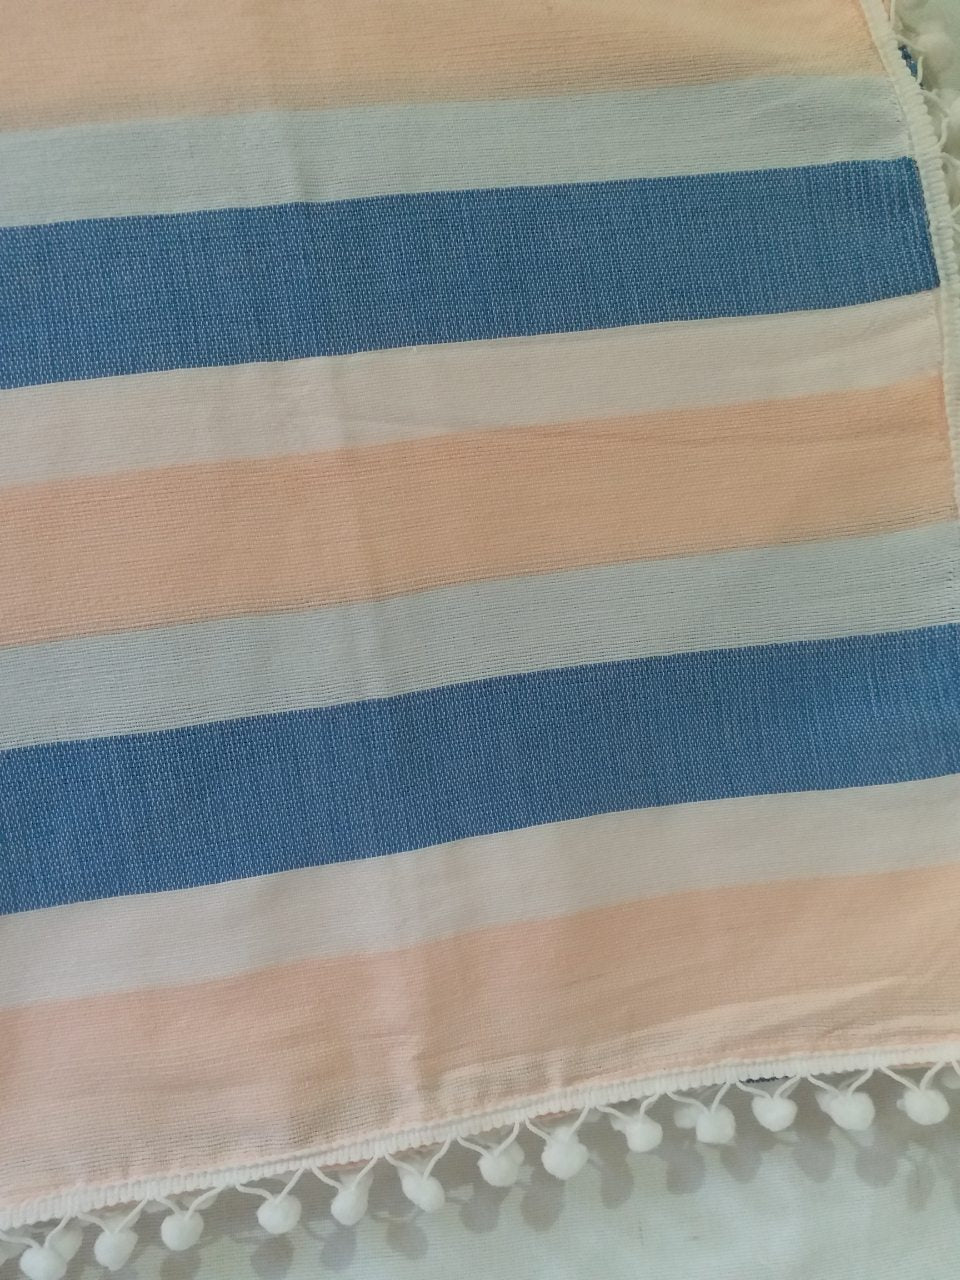 [SOLD OUT] Striped Wasig Baby Blanket (~35inx40in)